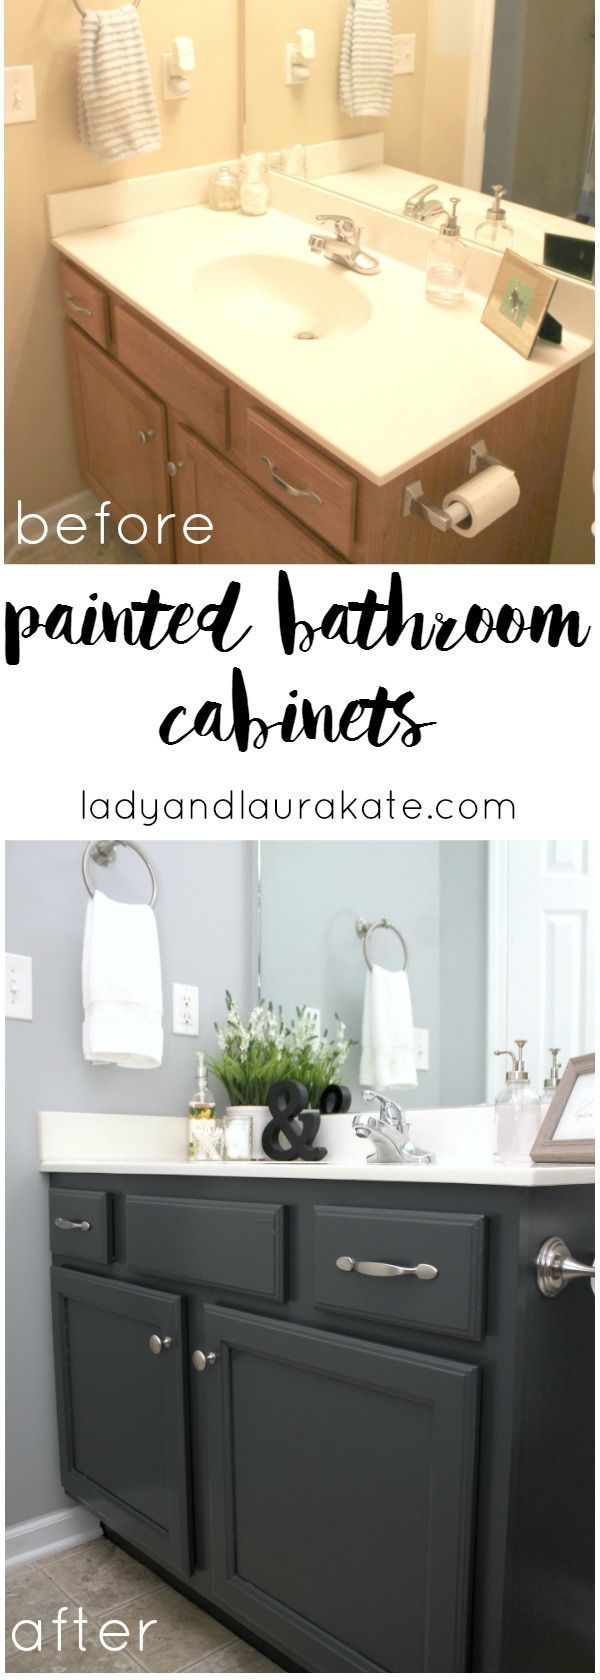 diy painted bathroom cabinets its super simple to achieve in this how to with homemade - Painted Bathroom Cabinets Before And After